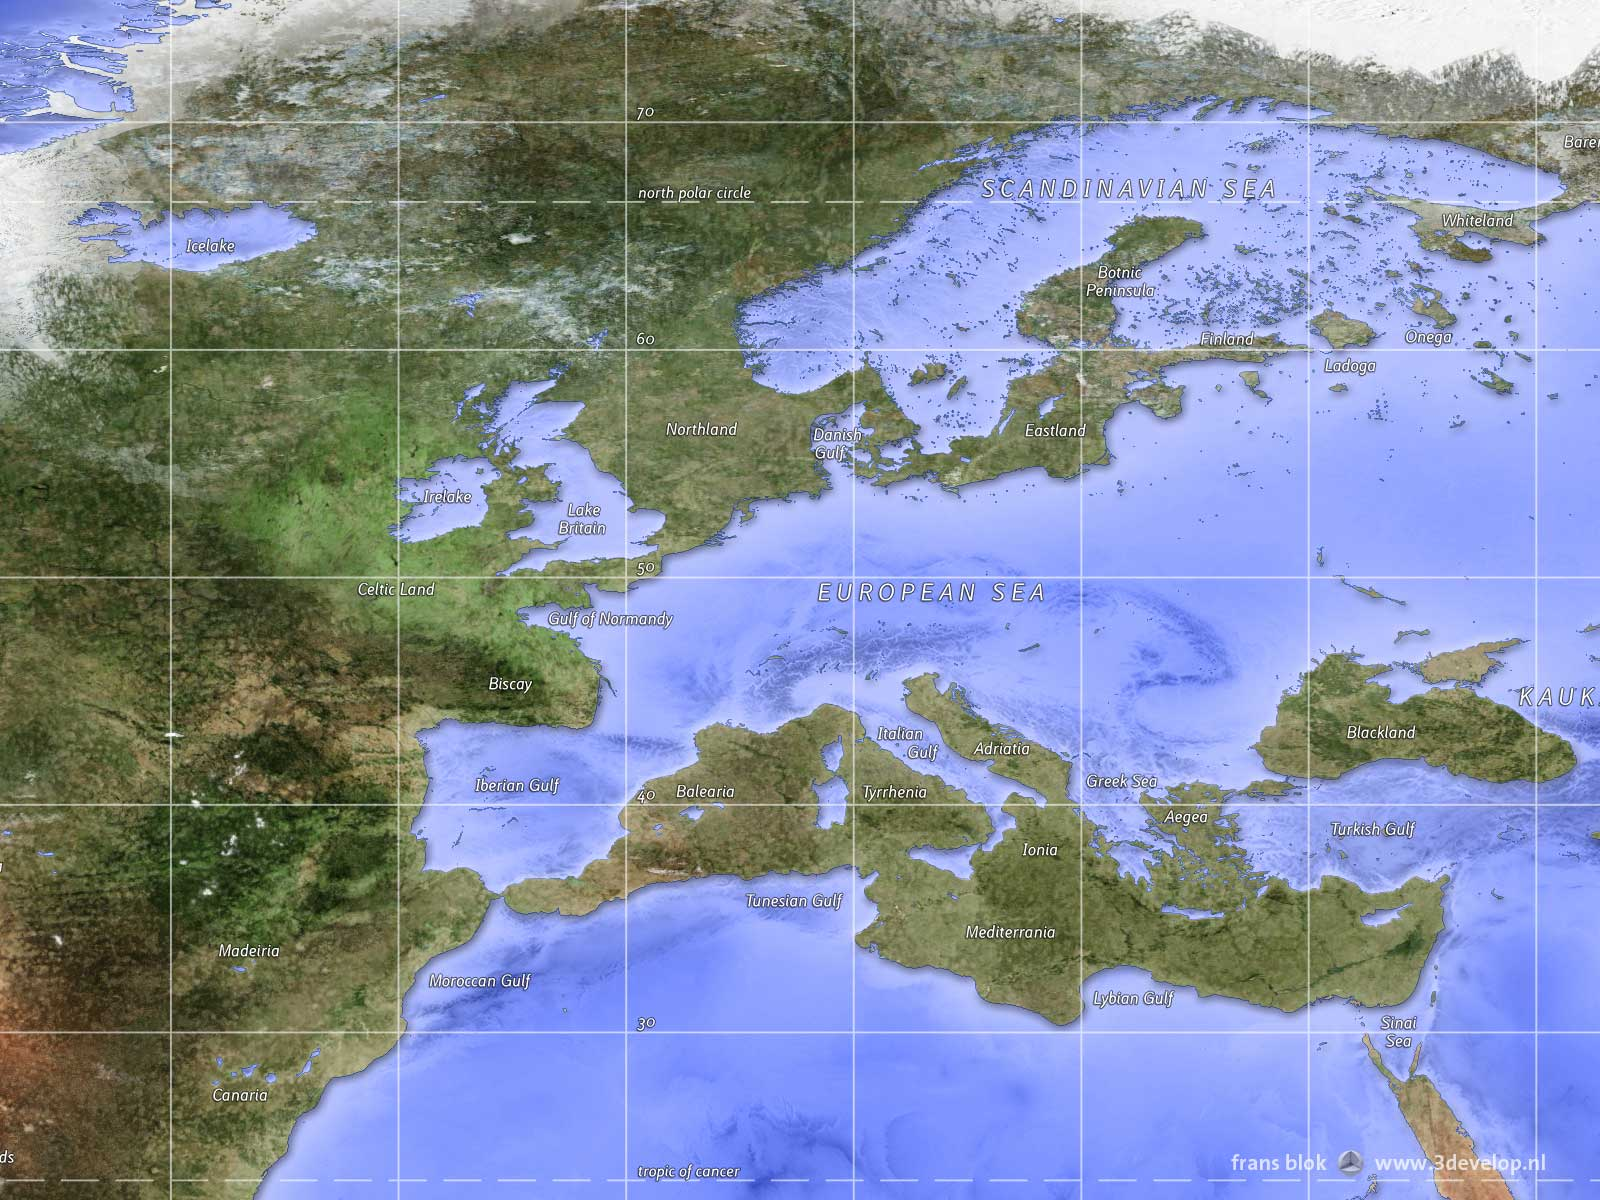 Fragment of the inverted worldmap with the area around the European Sea